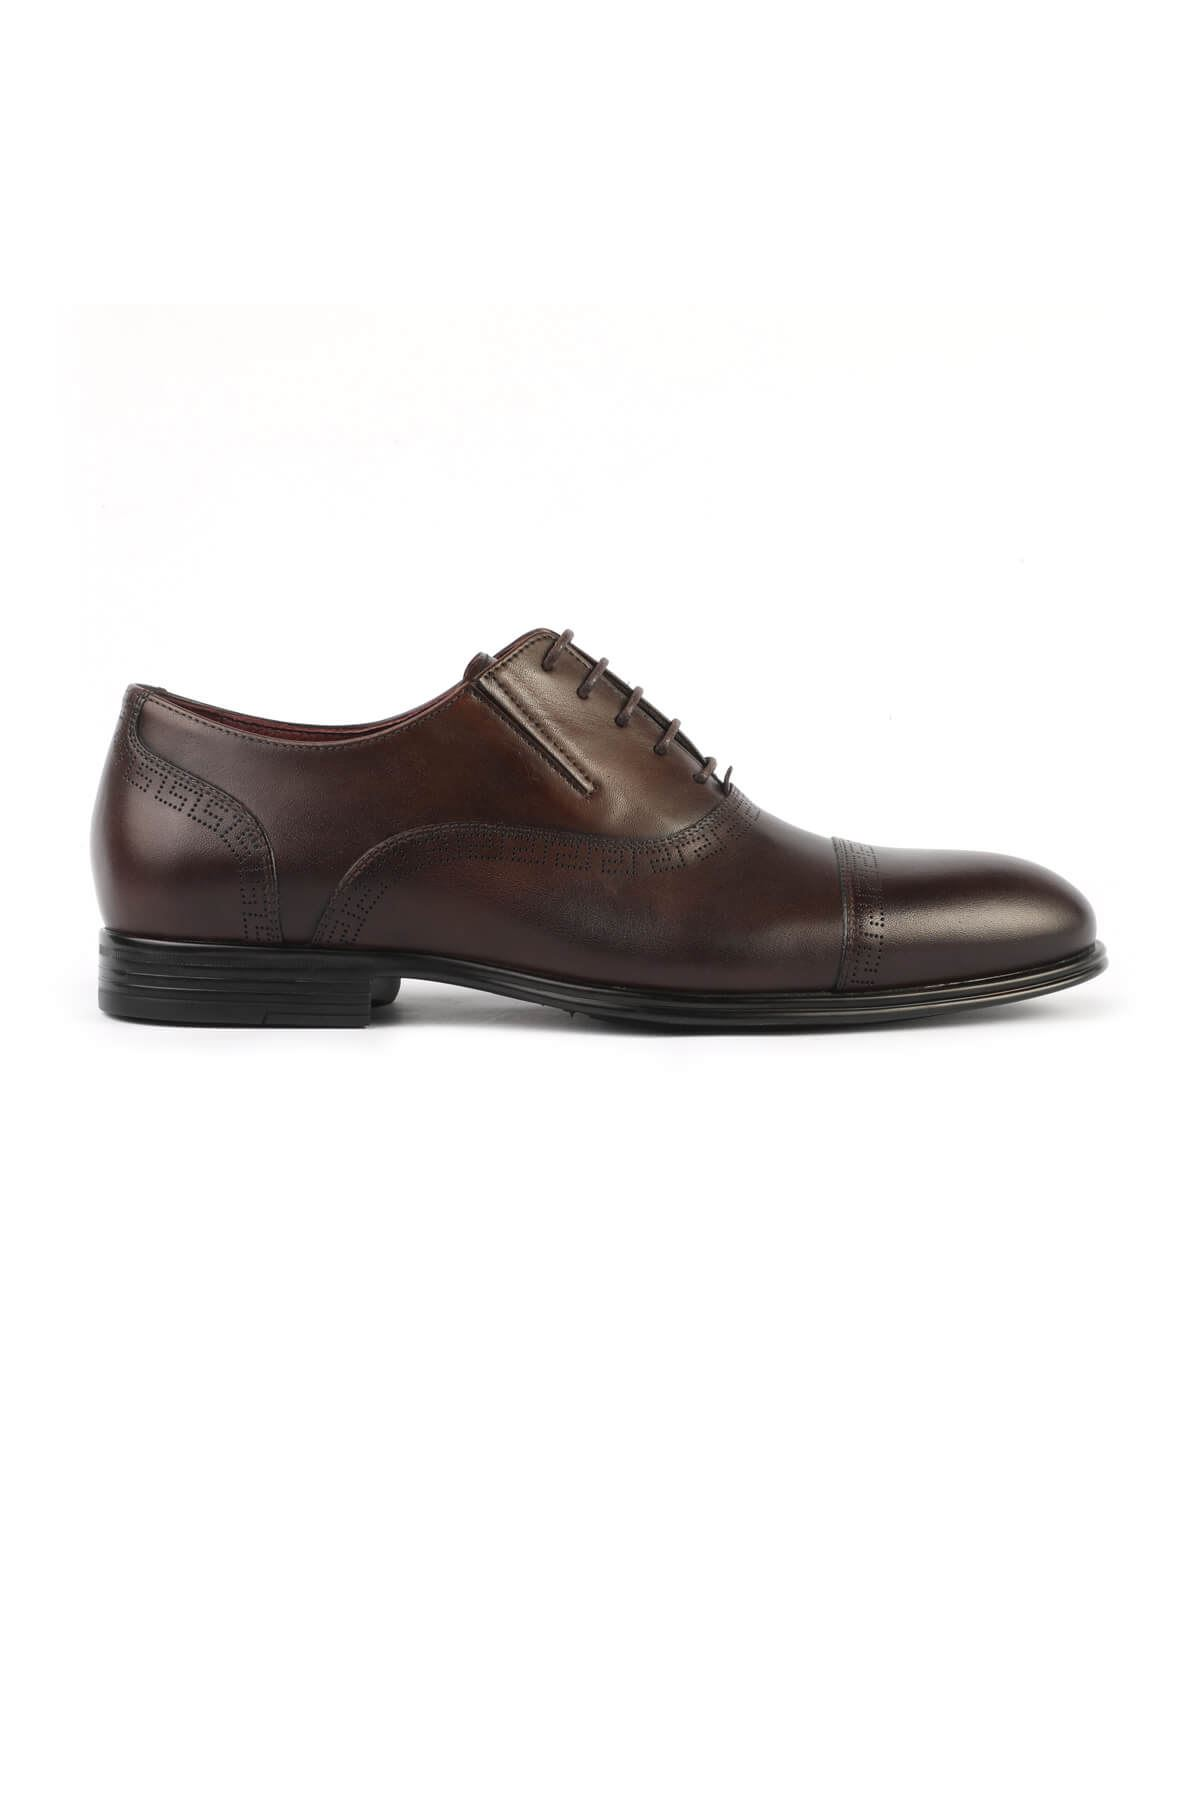 Libero 3113 Brown Classic Shoes